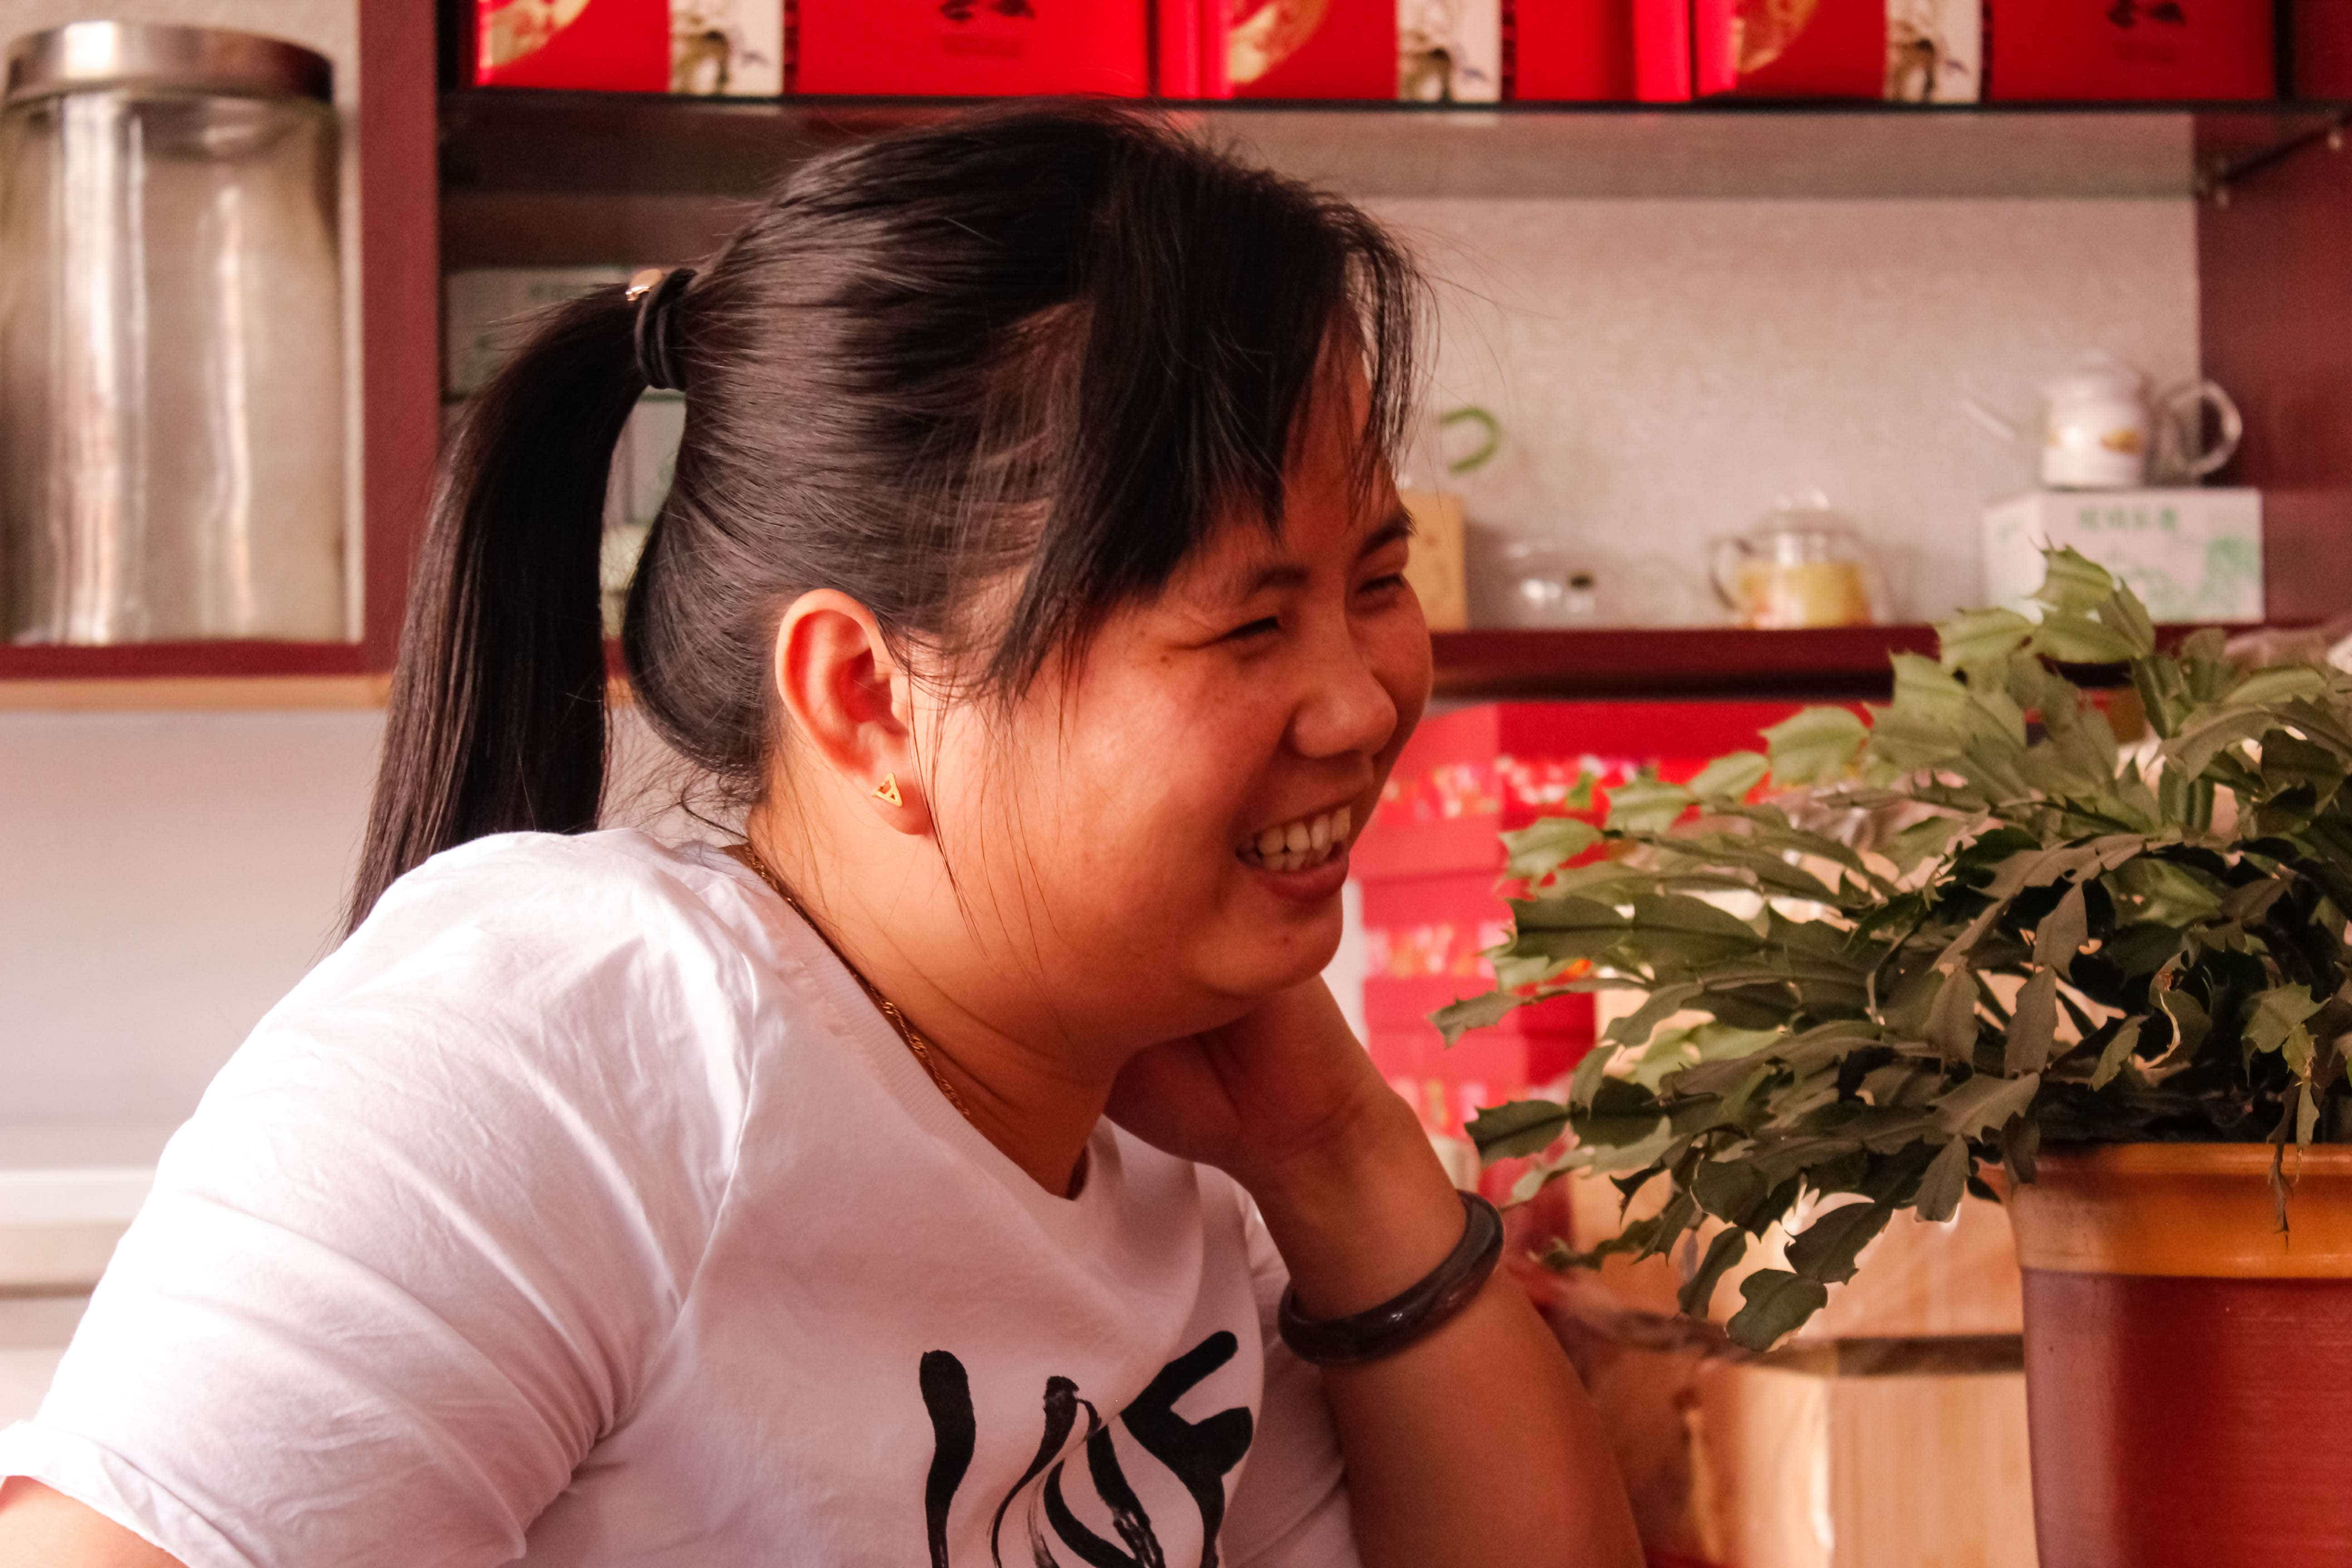 Ms. Liu visits her friend and neighbor, He Qingqing, at the tea market where they both have shops